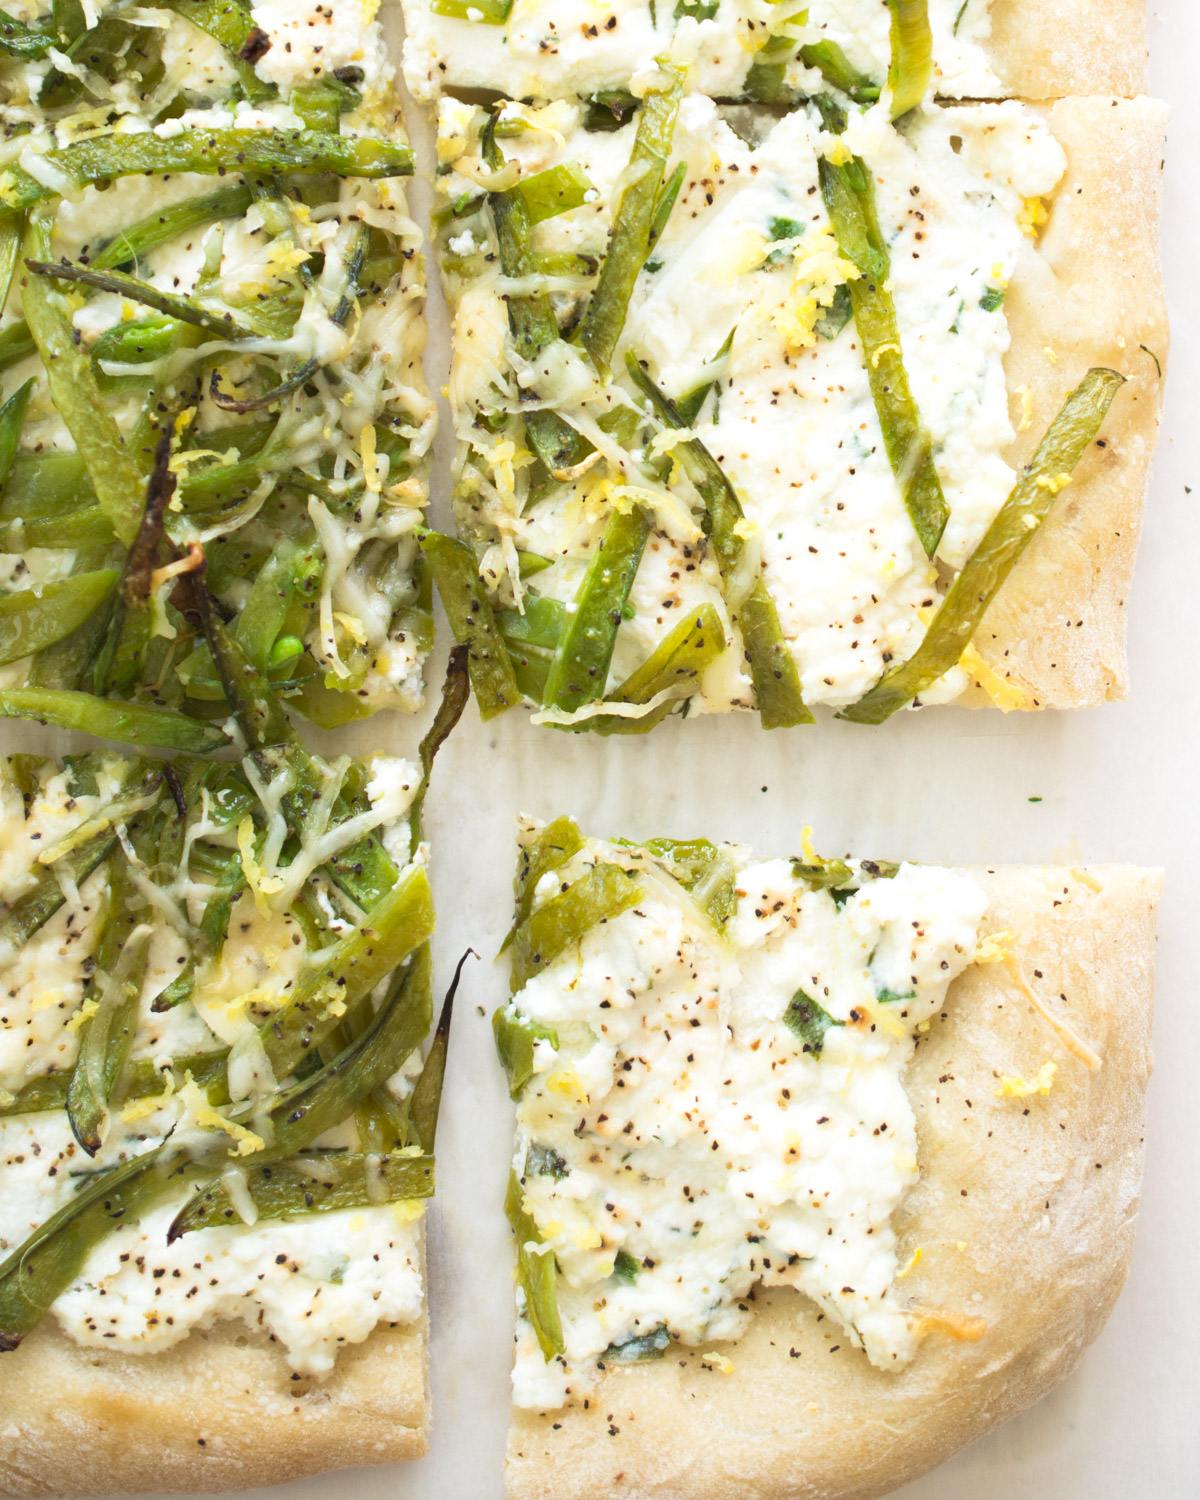 Pizza topped with herbed ricotta and sliced fresh snow peas.